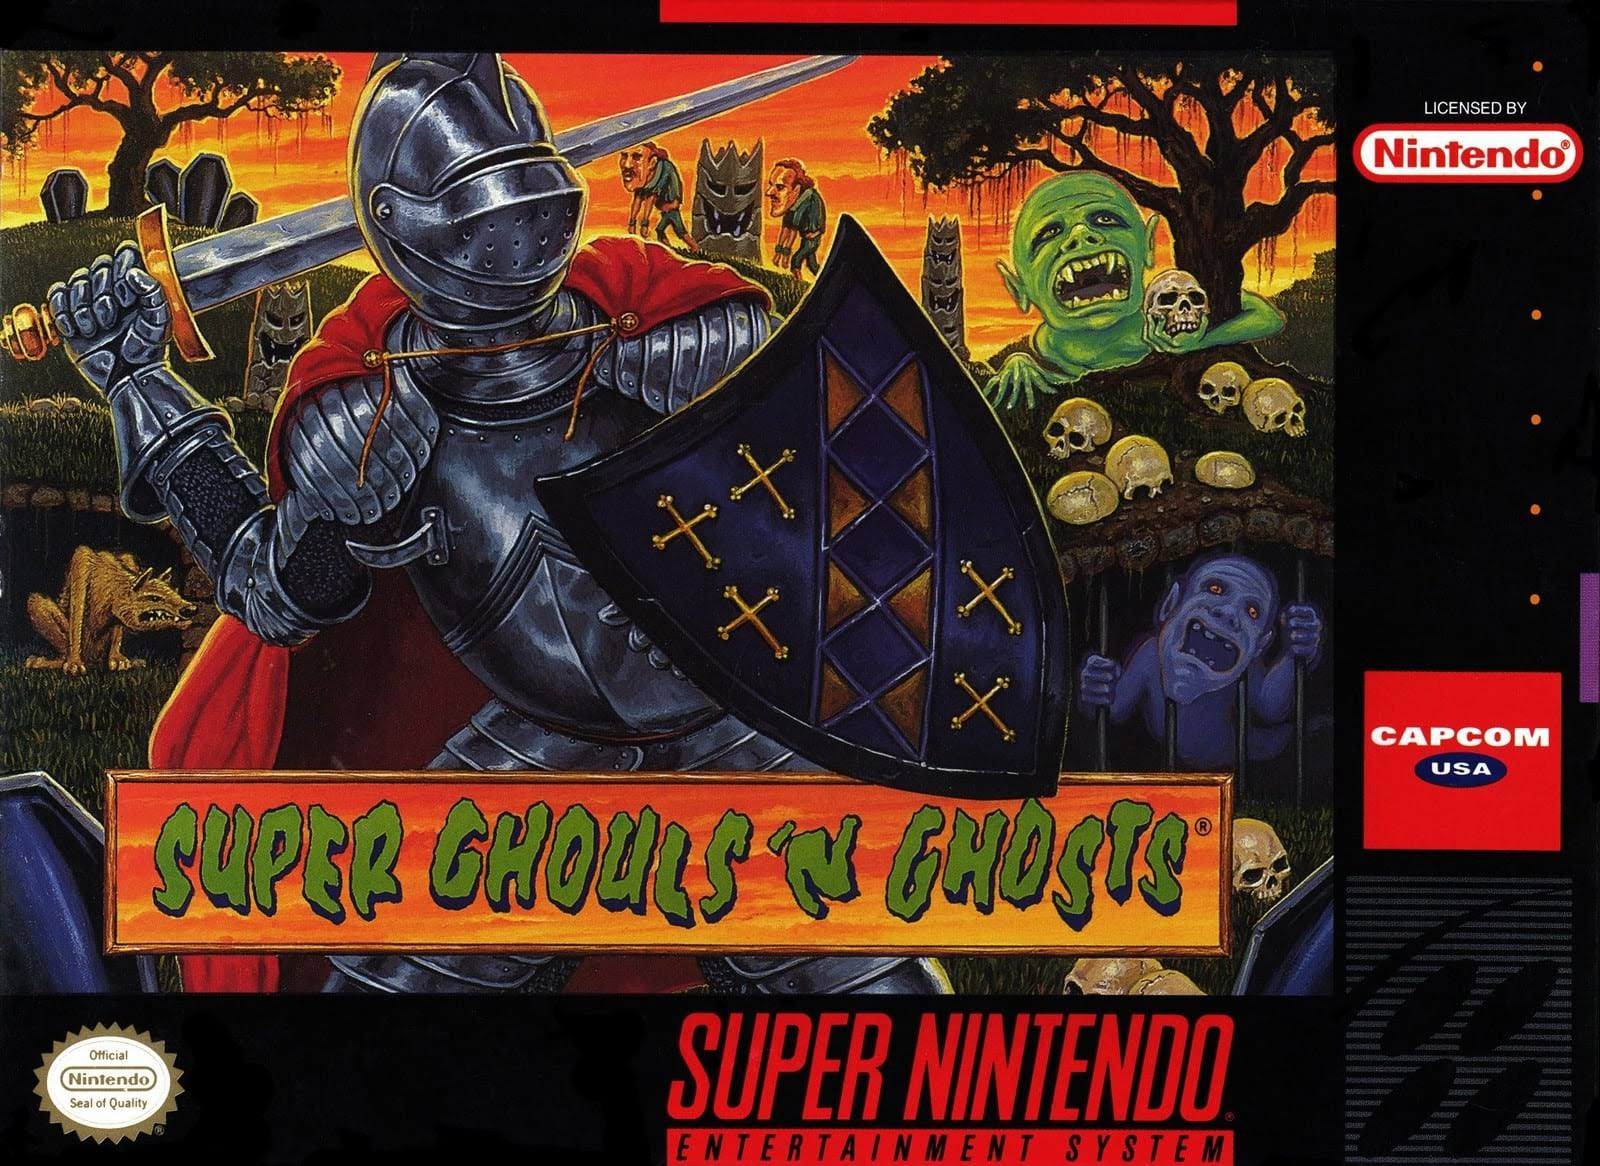 Super Ghouls 'N Ghosts - Super Nintendo Entertainment System